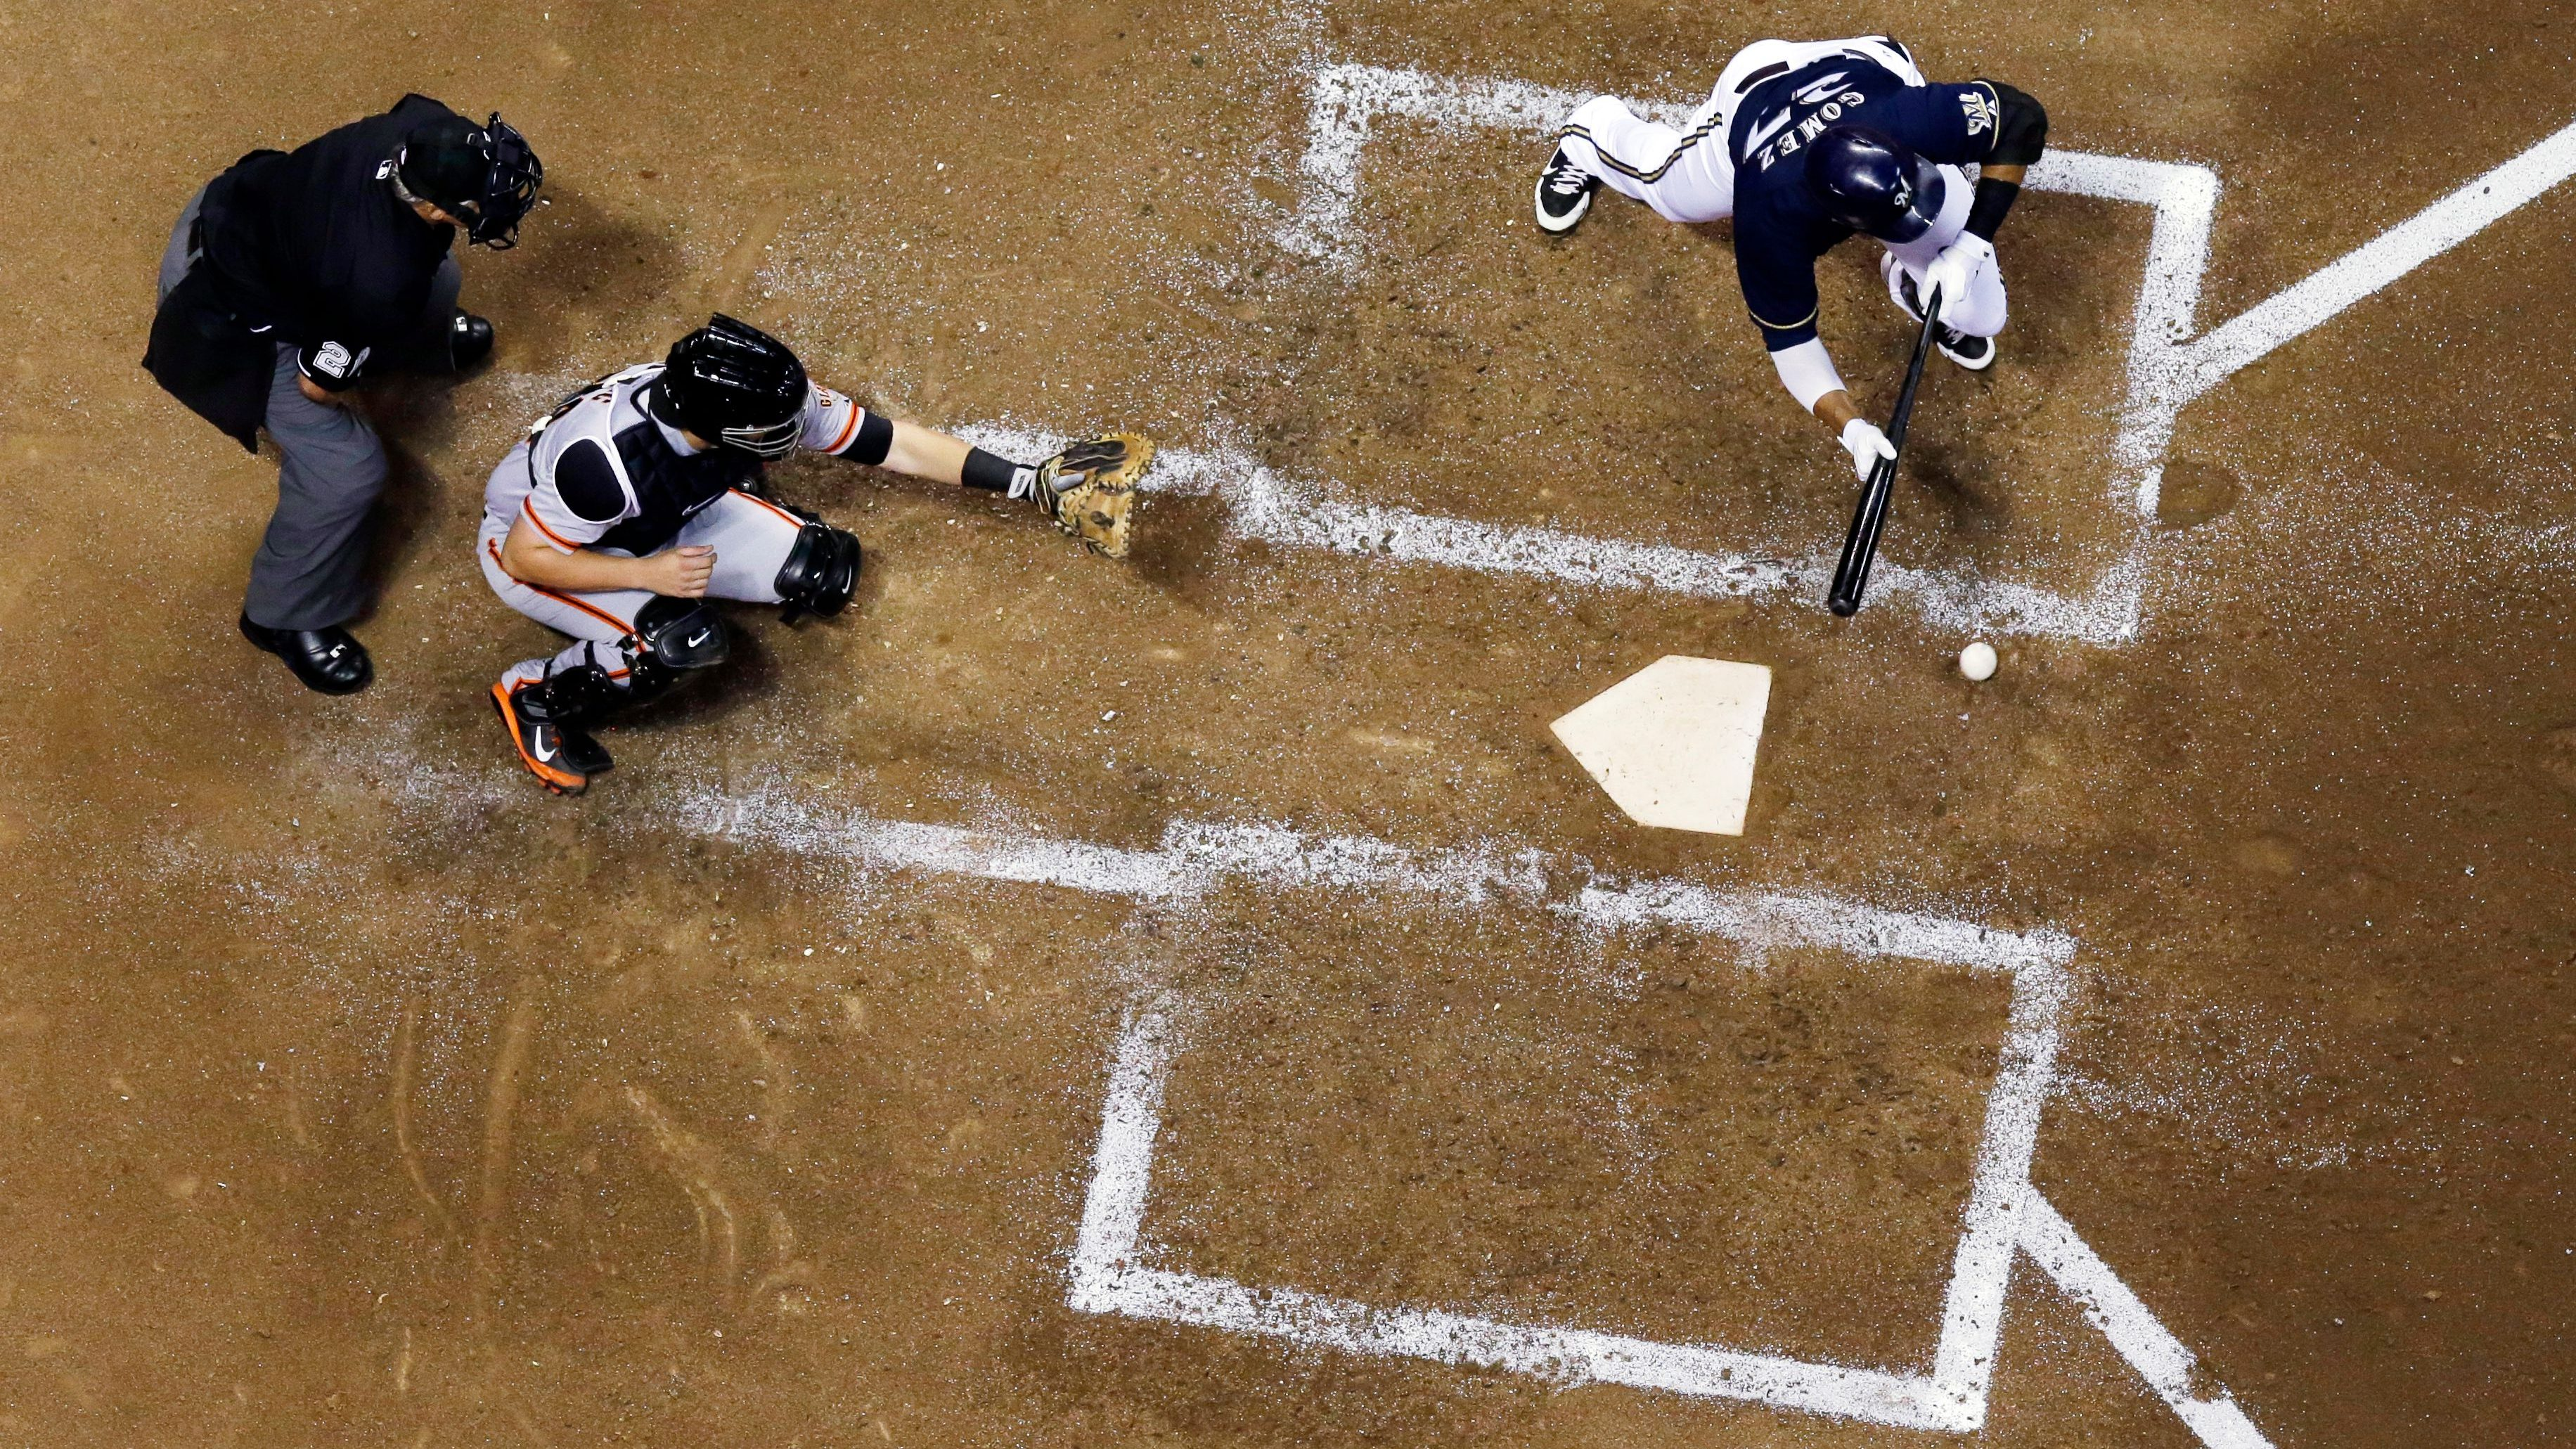 Milwaukee Brewers' Carlos Gomez bunts for a squeeze play during the fifth inning of a baseball game against the San Francisco Giants Tuesday, Aug. 5, 2014.